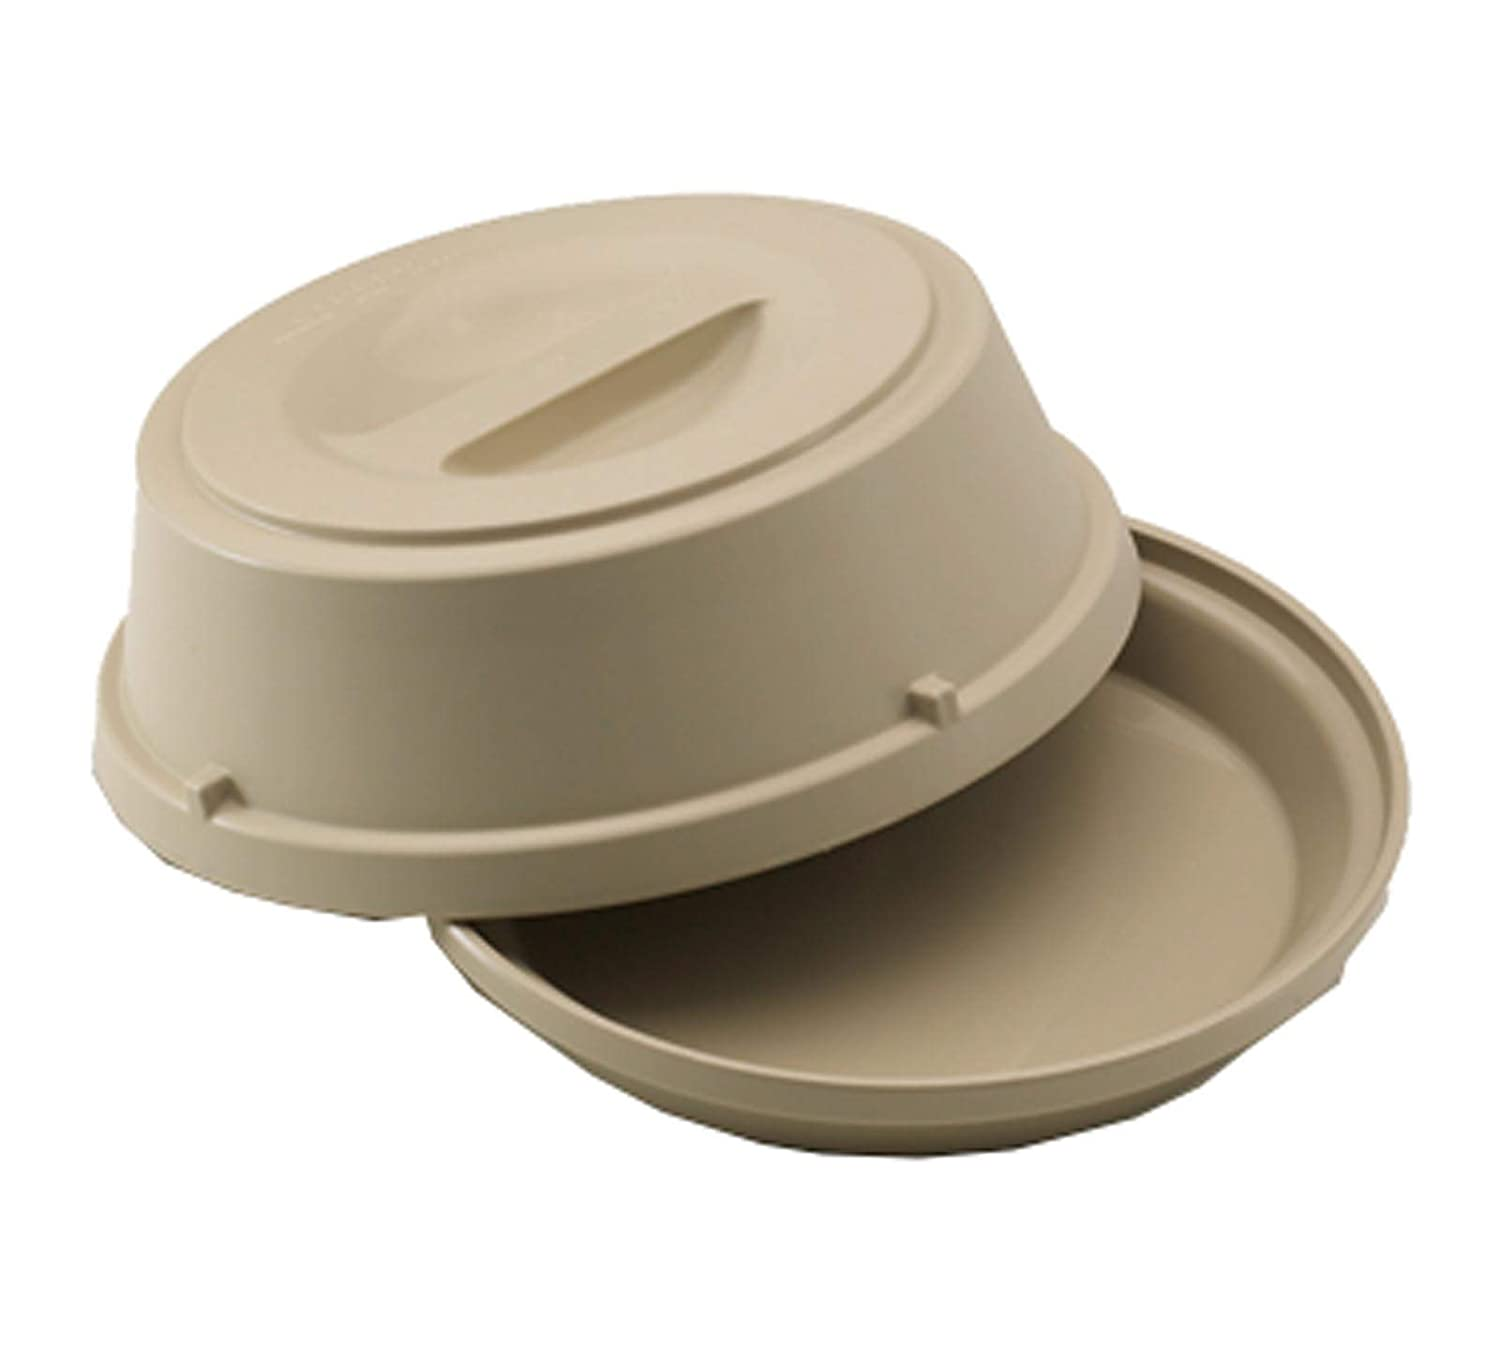 Cambro Heat Keeper 39 Base/Cover-White (HK39148) Category: Food Transport